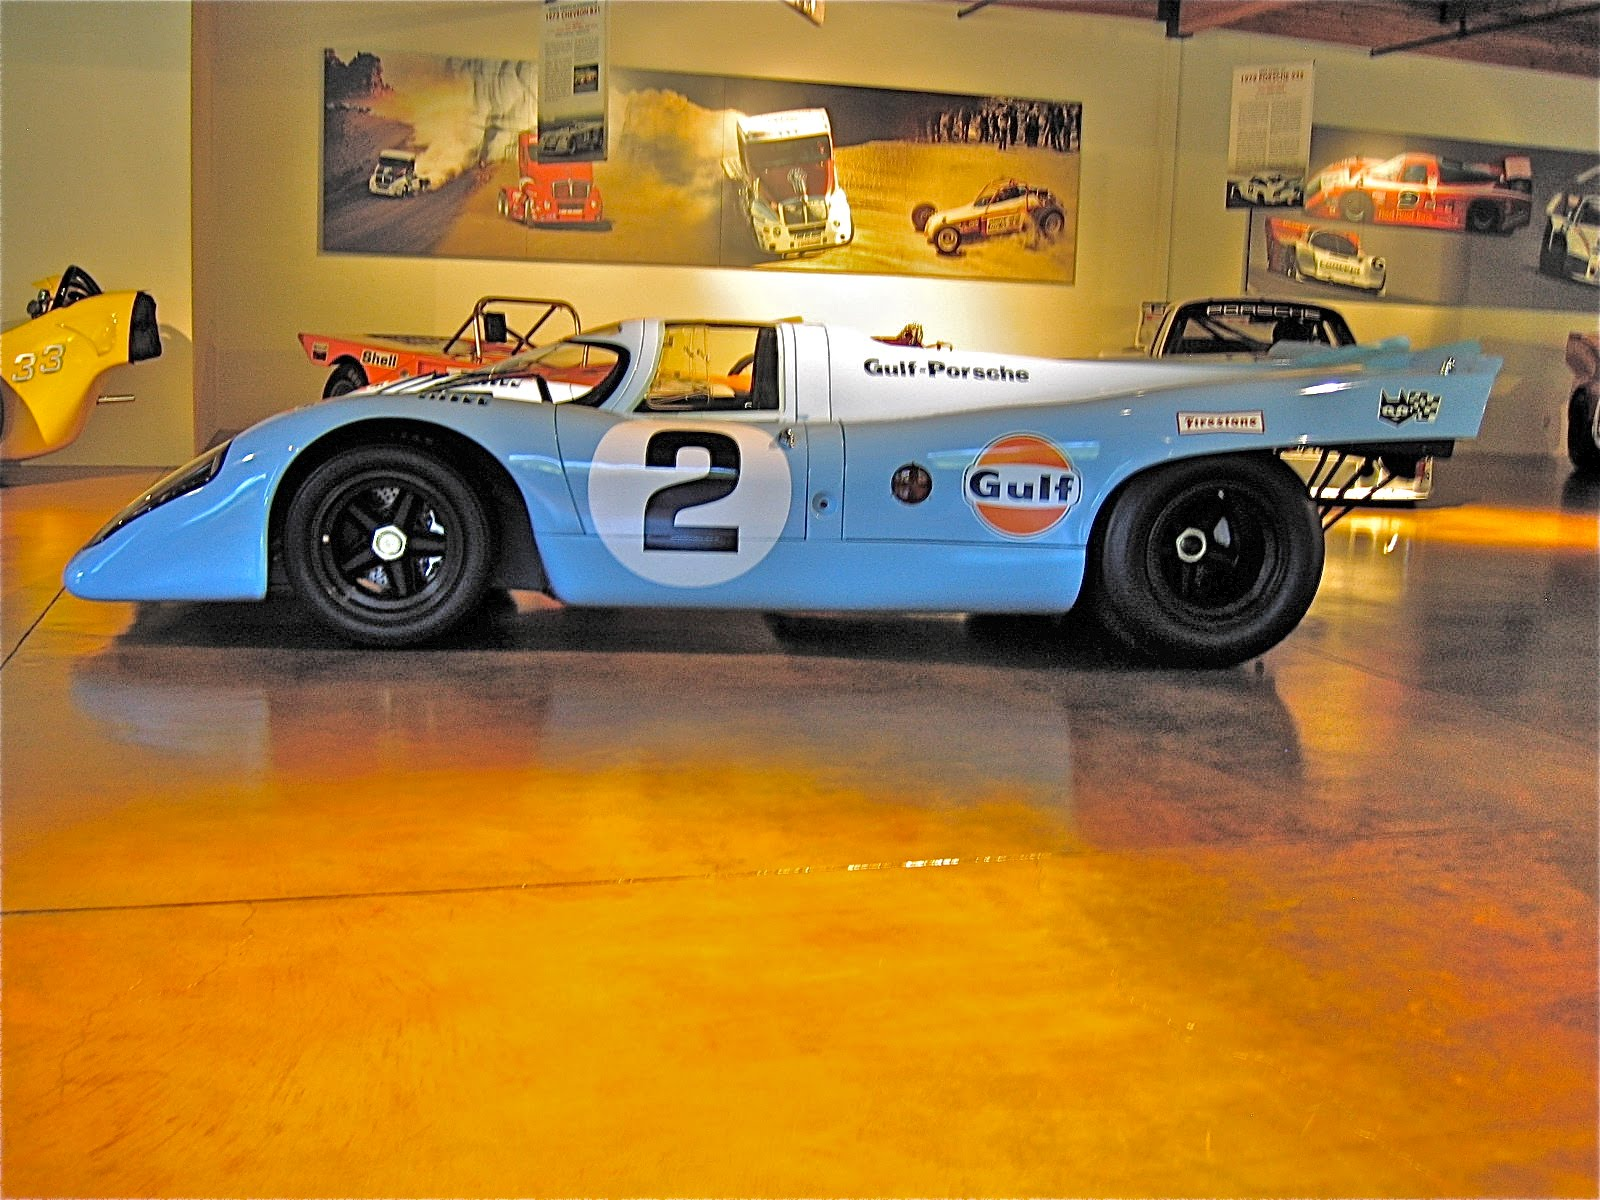 tamerlane 39 s thoughts canepa motorsports museum review and pictures part 2. Black Bedroom Furniture Sets. Home Design Ideas